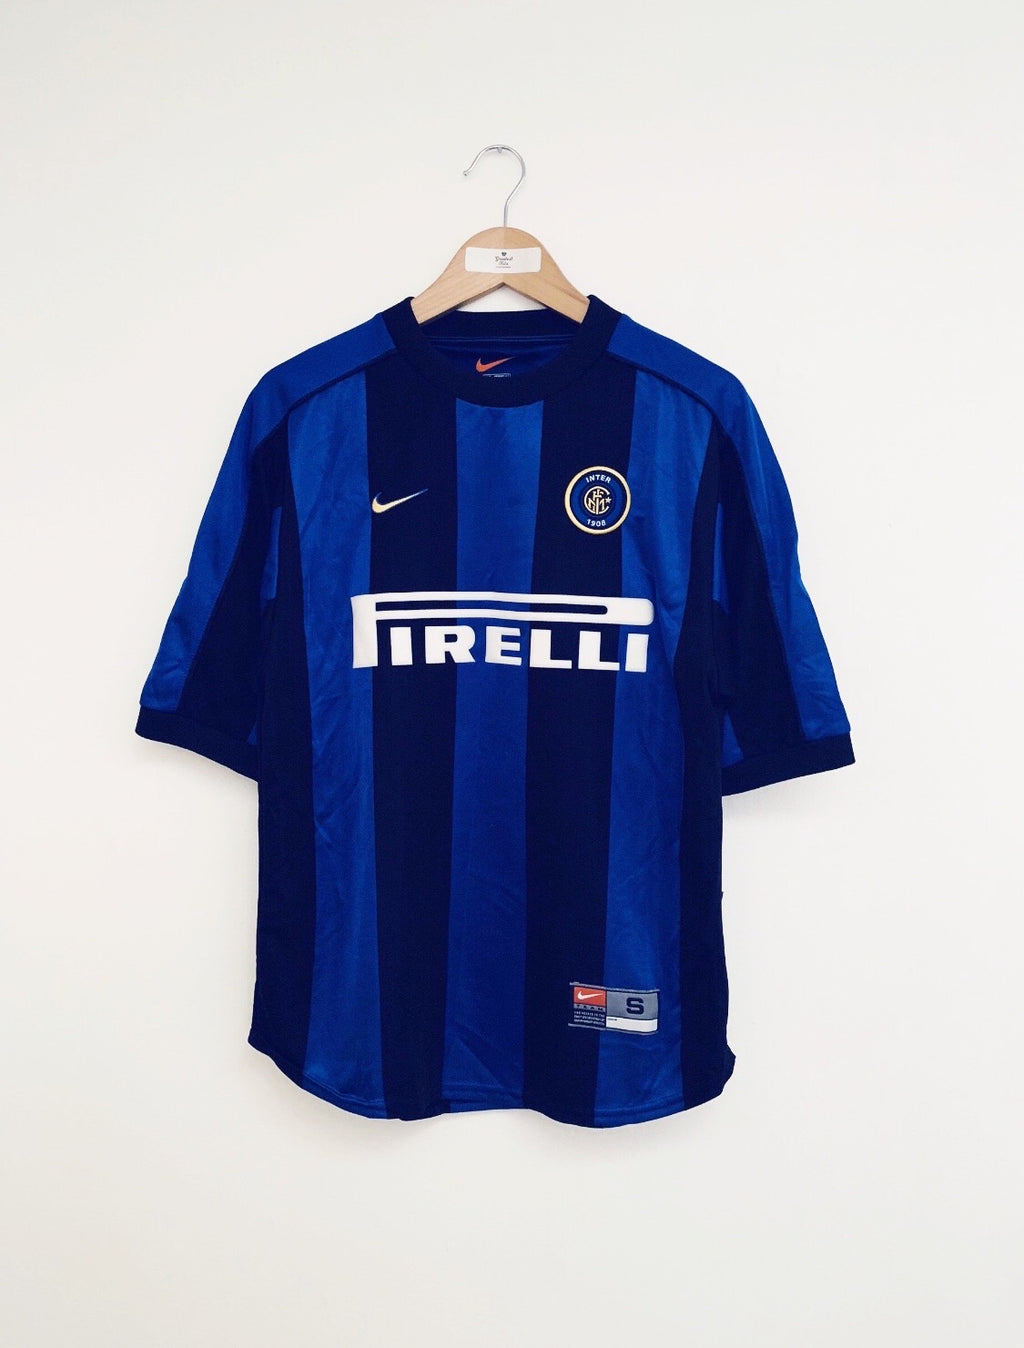 1999/00 Inter Milan Home Shirt (S) 10/10